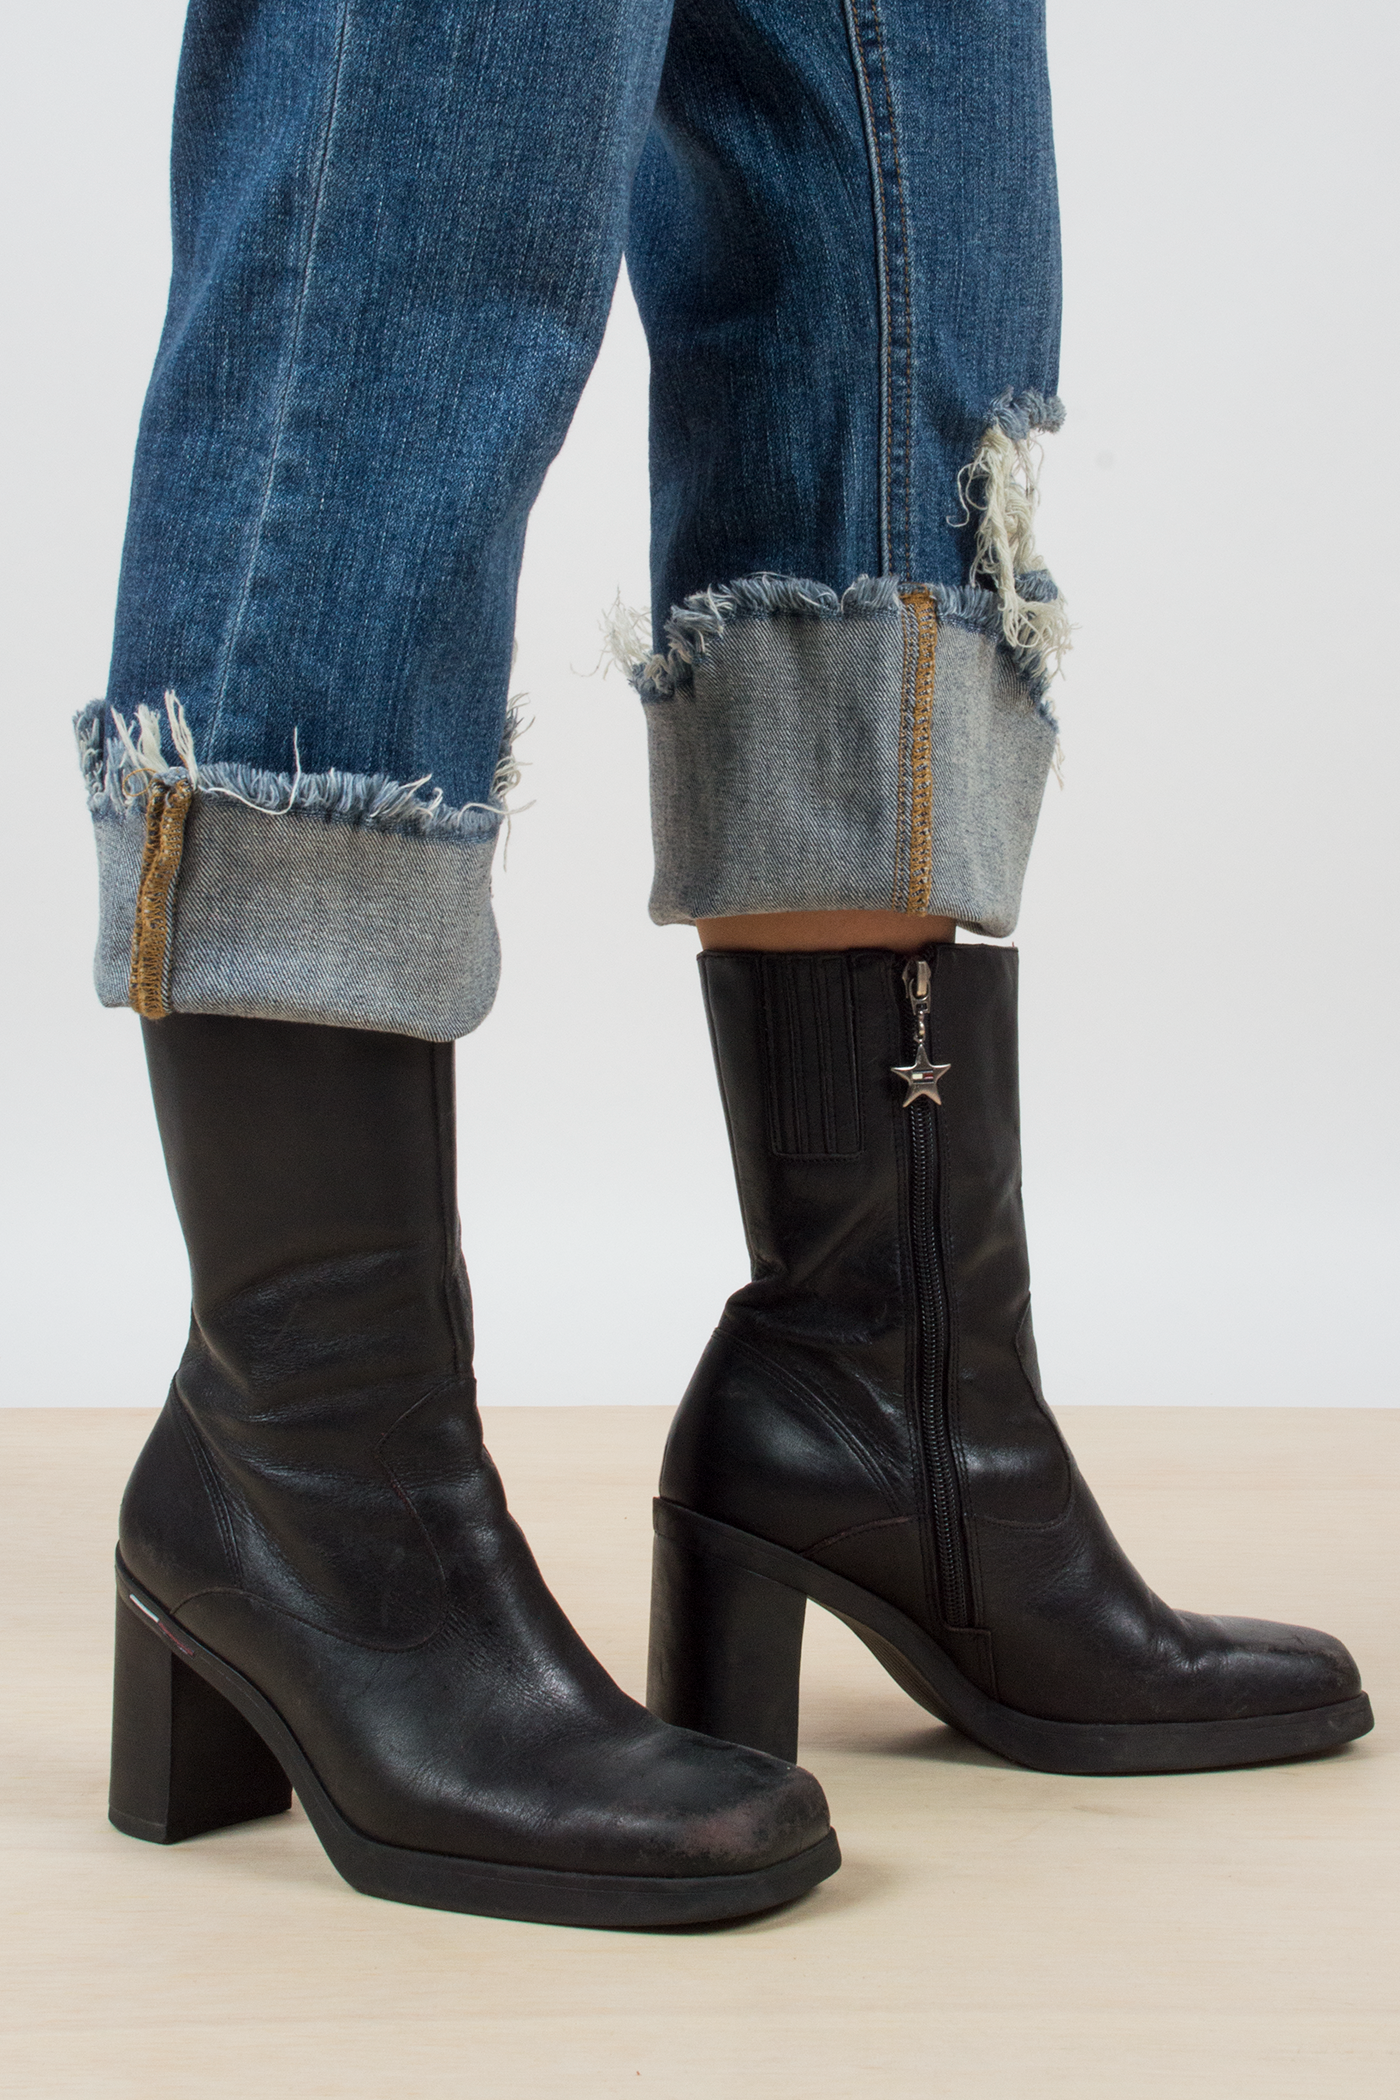 vintage Tommy Hilfiger black leather boots